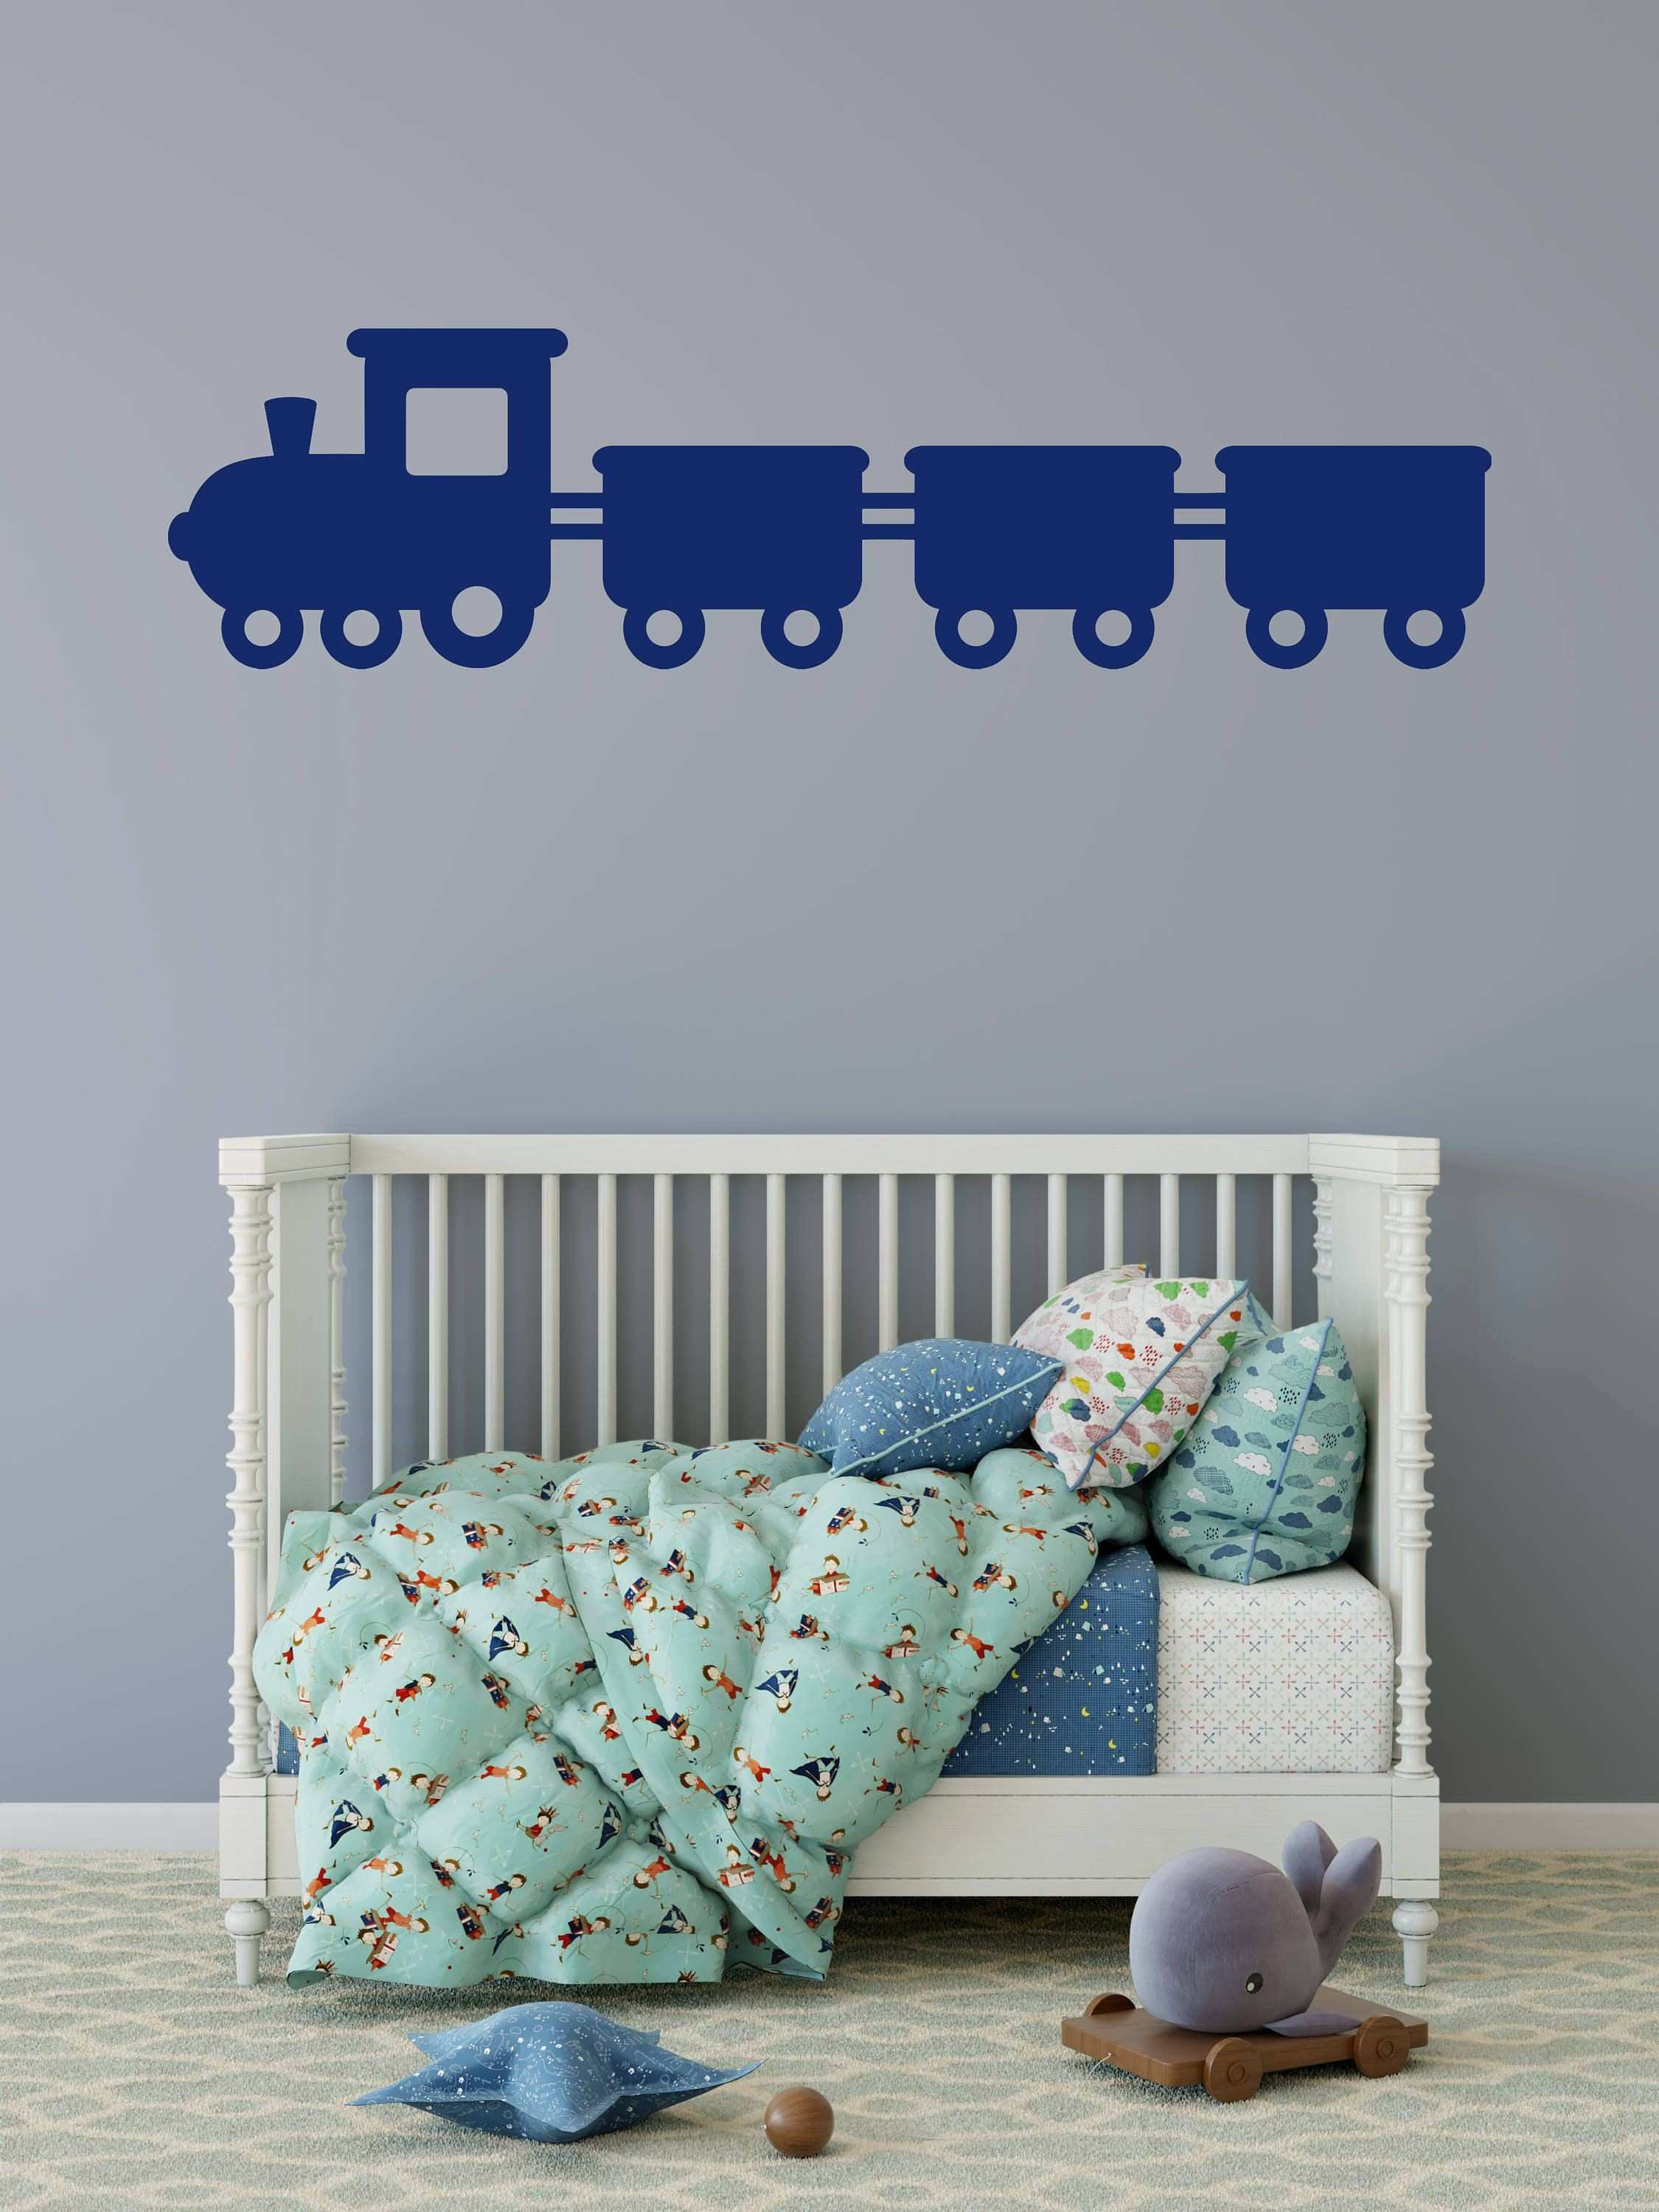 Train Wall Decal Train Decals Kids Room Decor Train Decor